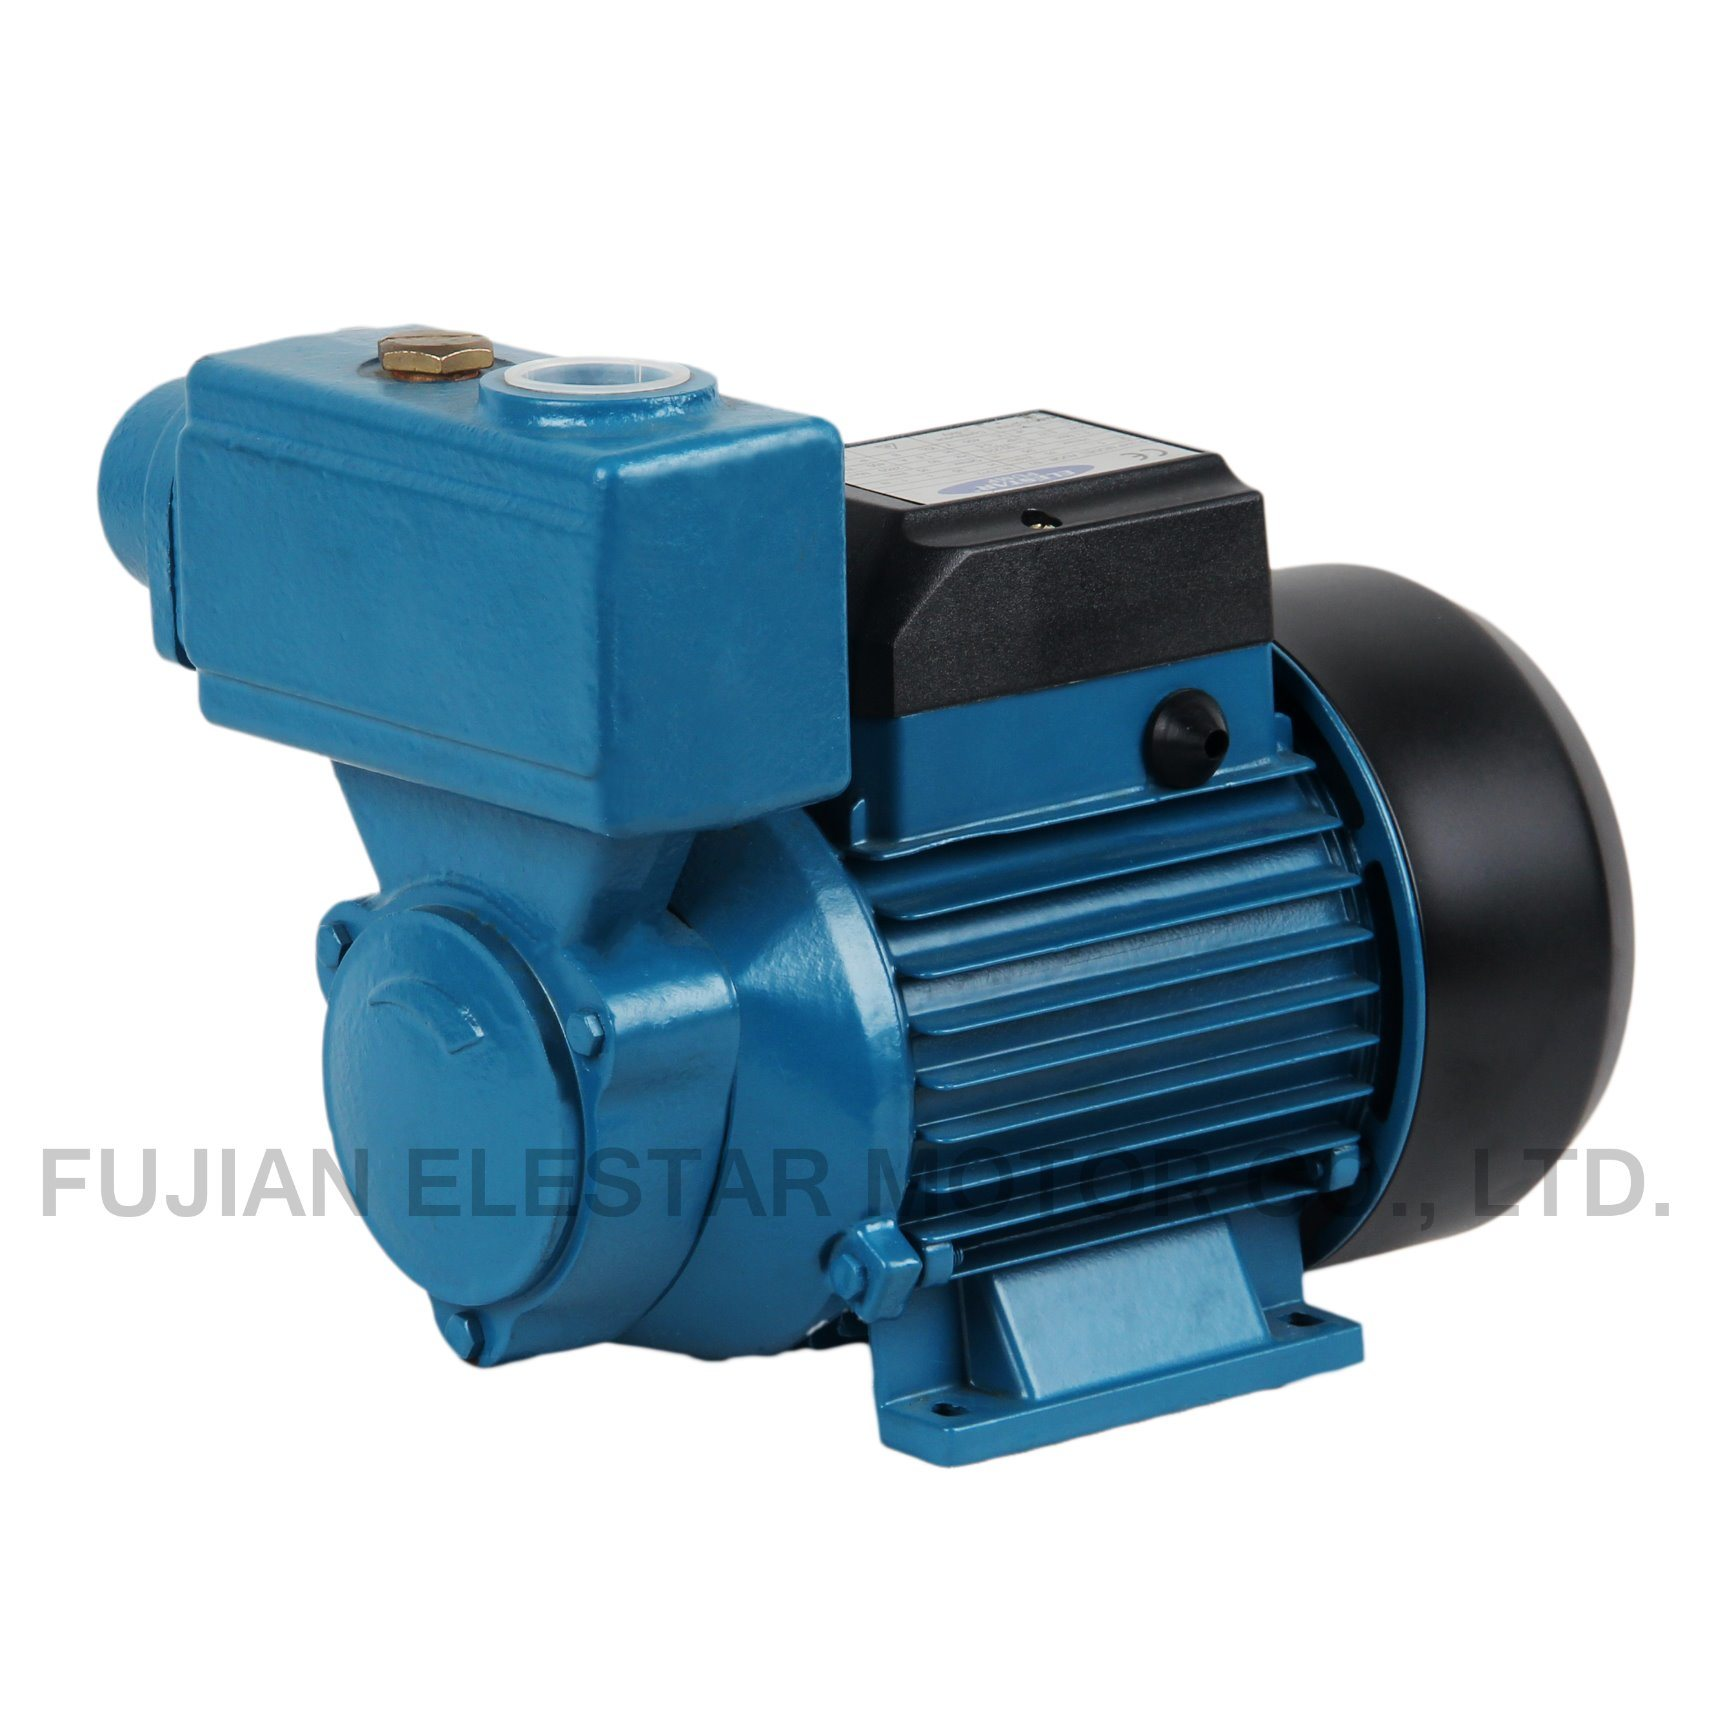 China TPS-80 Copper Wire Brss Impeller Water Pump Motor Photos ...